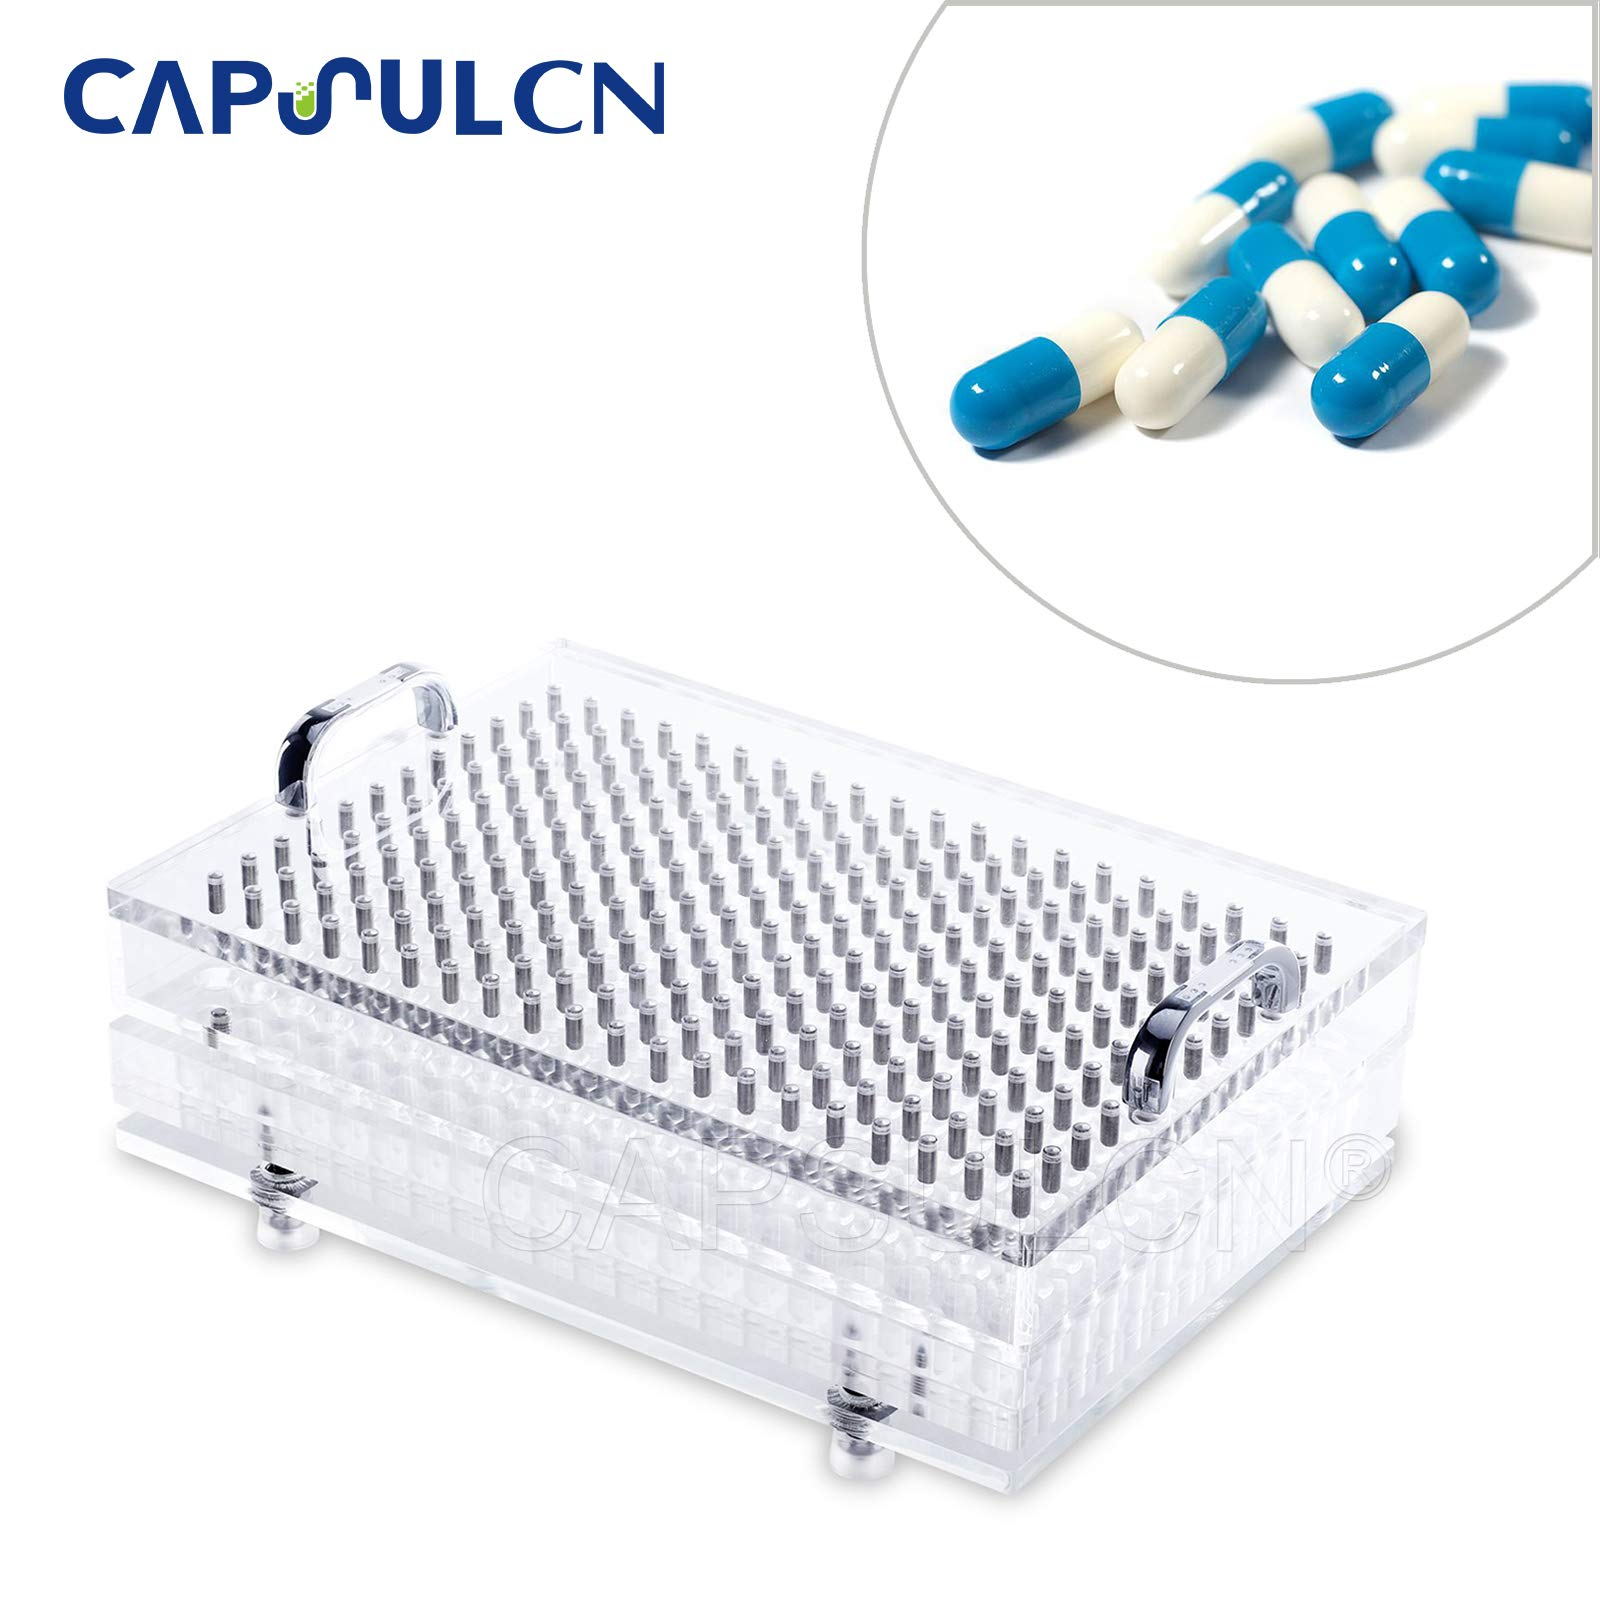 New Acrylic CN-240CL Manual Capsule Filling Machine Size 0 for Separated Empty Capsules 240 Holes